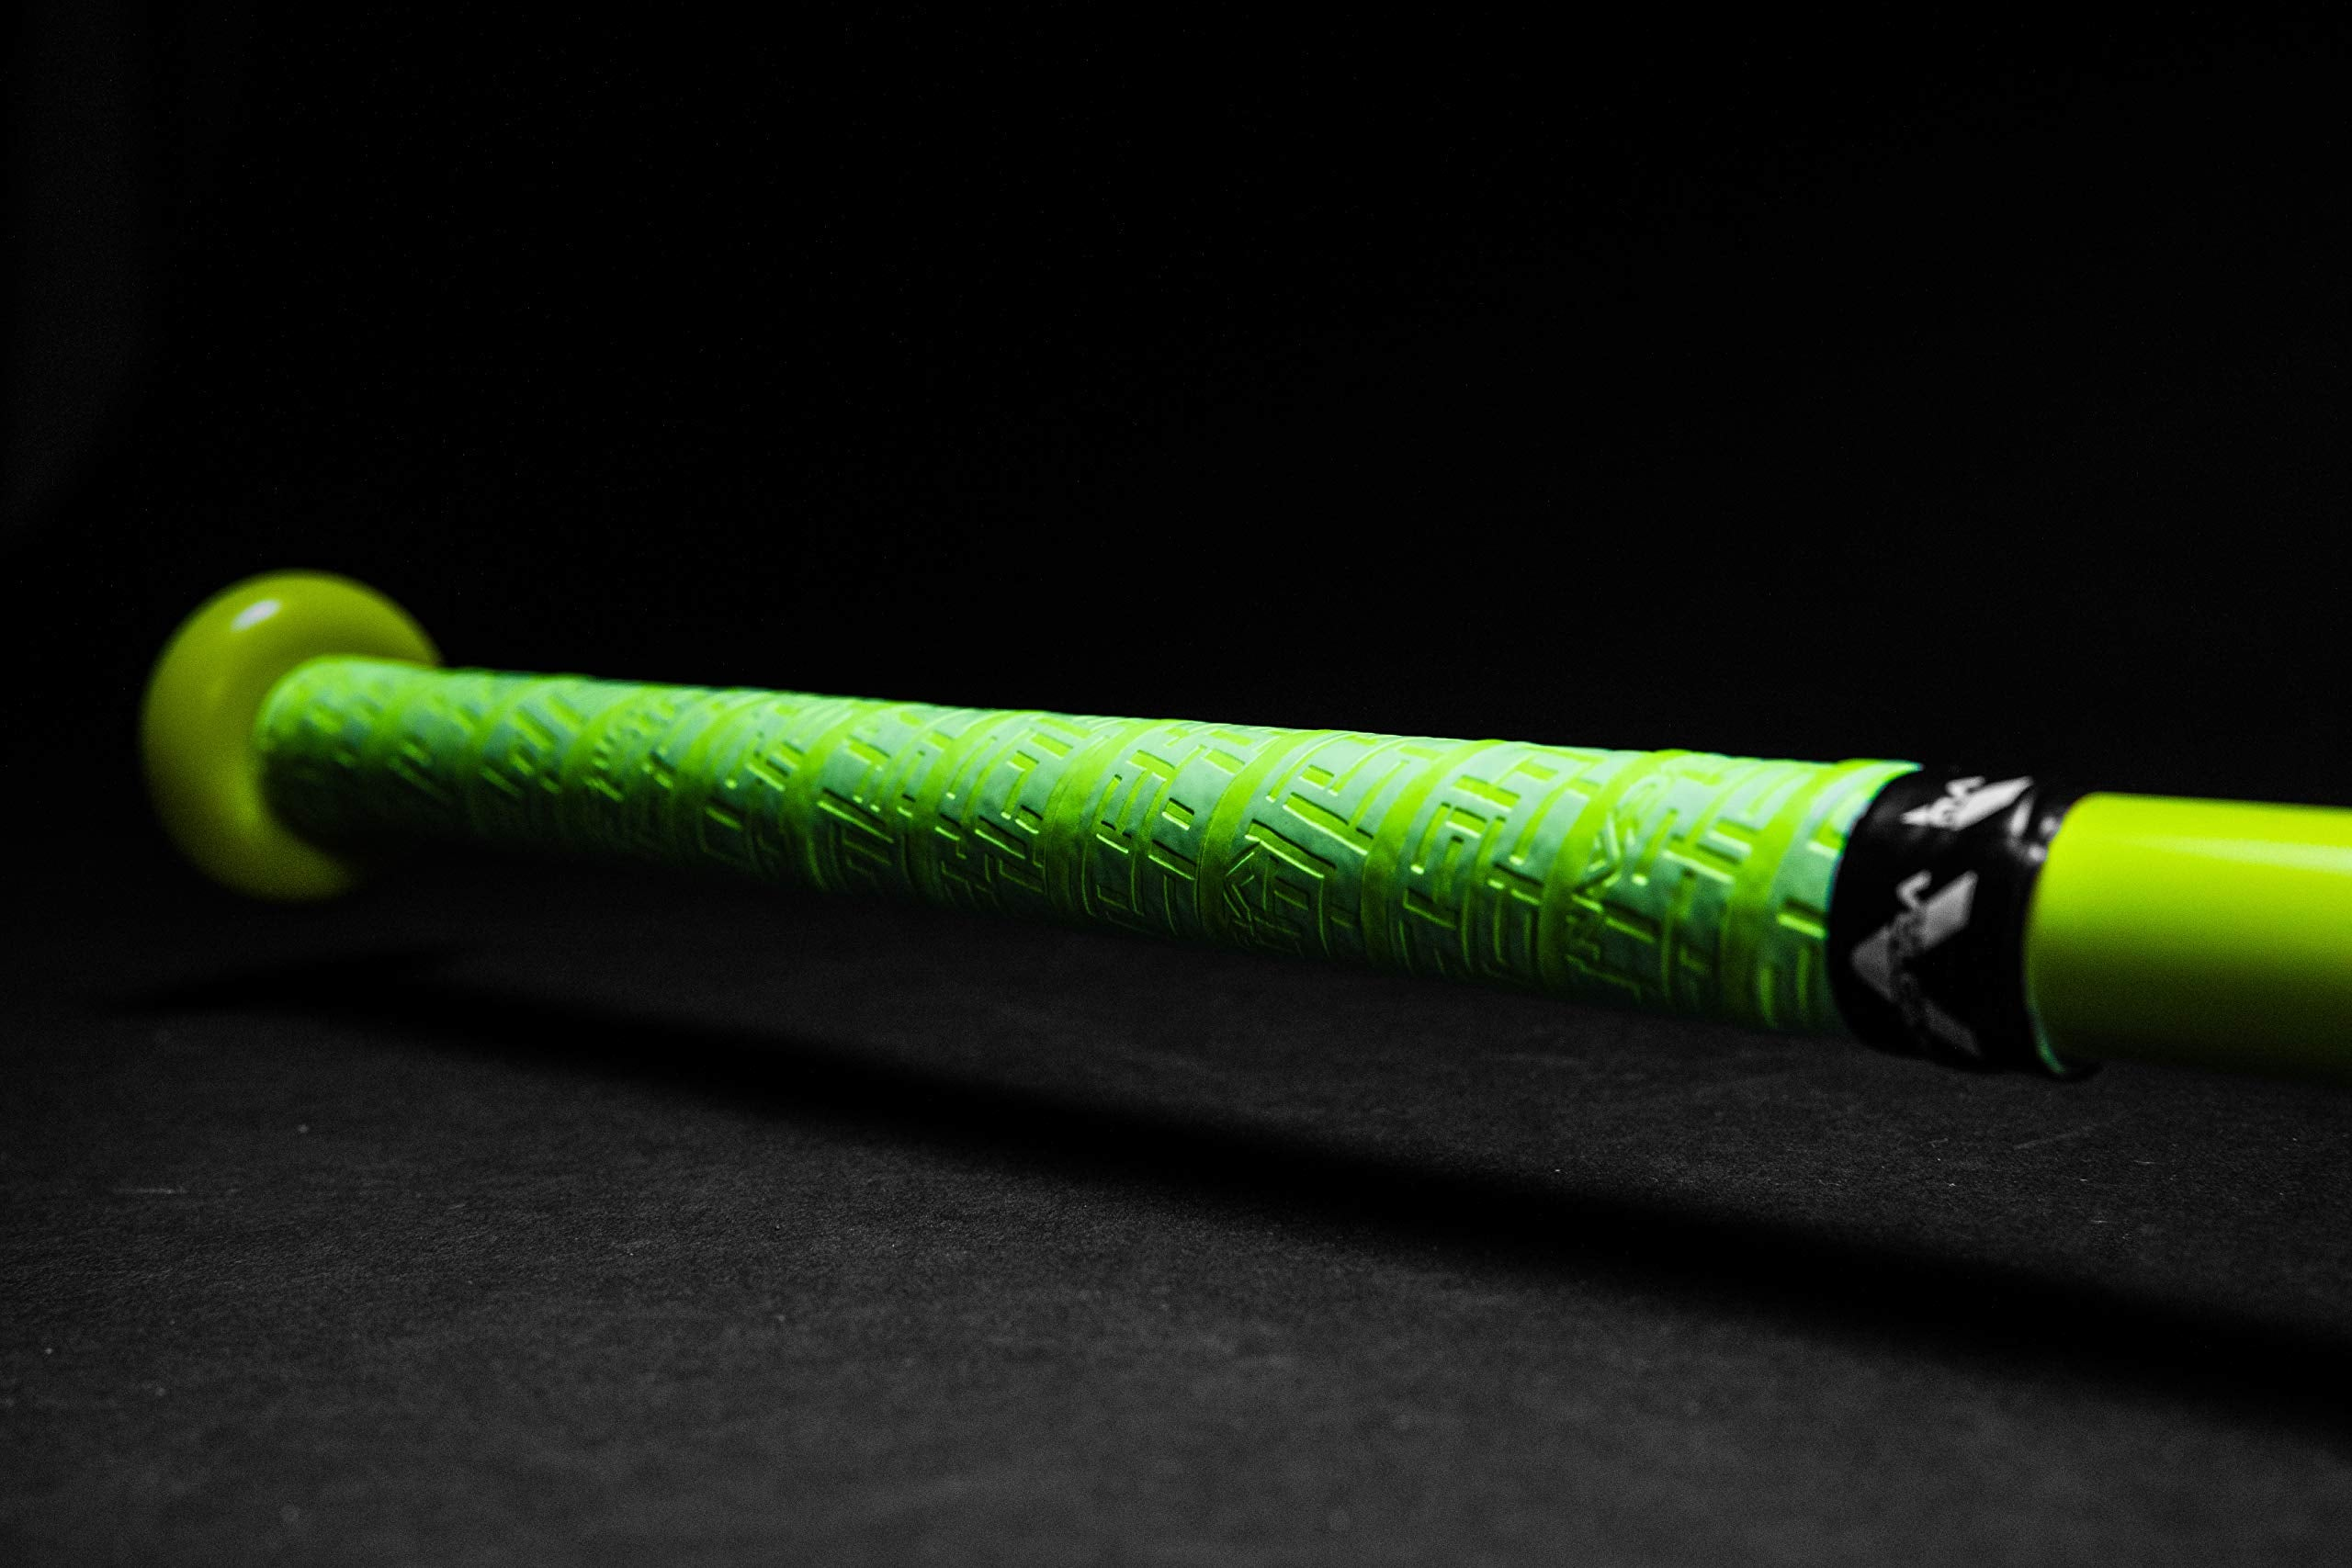 Worth LEGIT XXL Highlighter Slowpitch Softball Bat, 26,27,28 - Ctfitnesswear